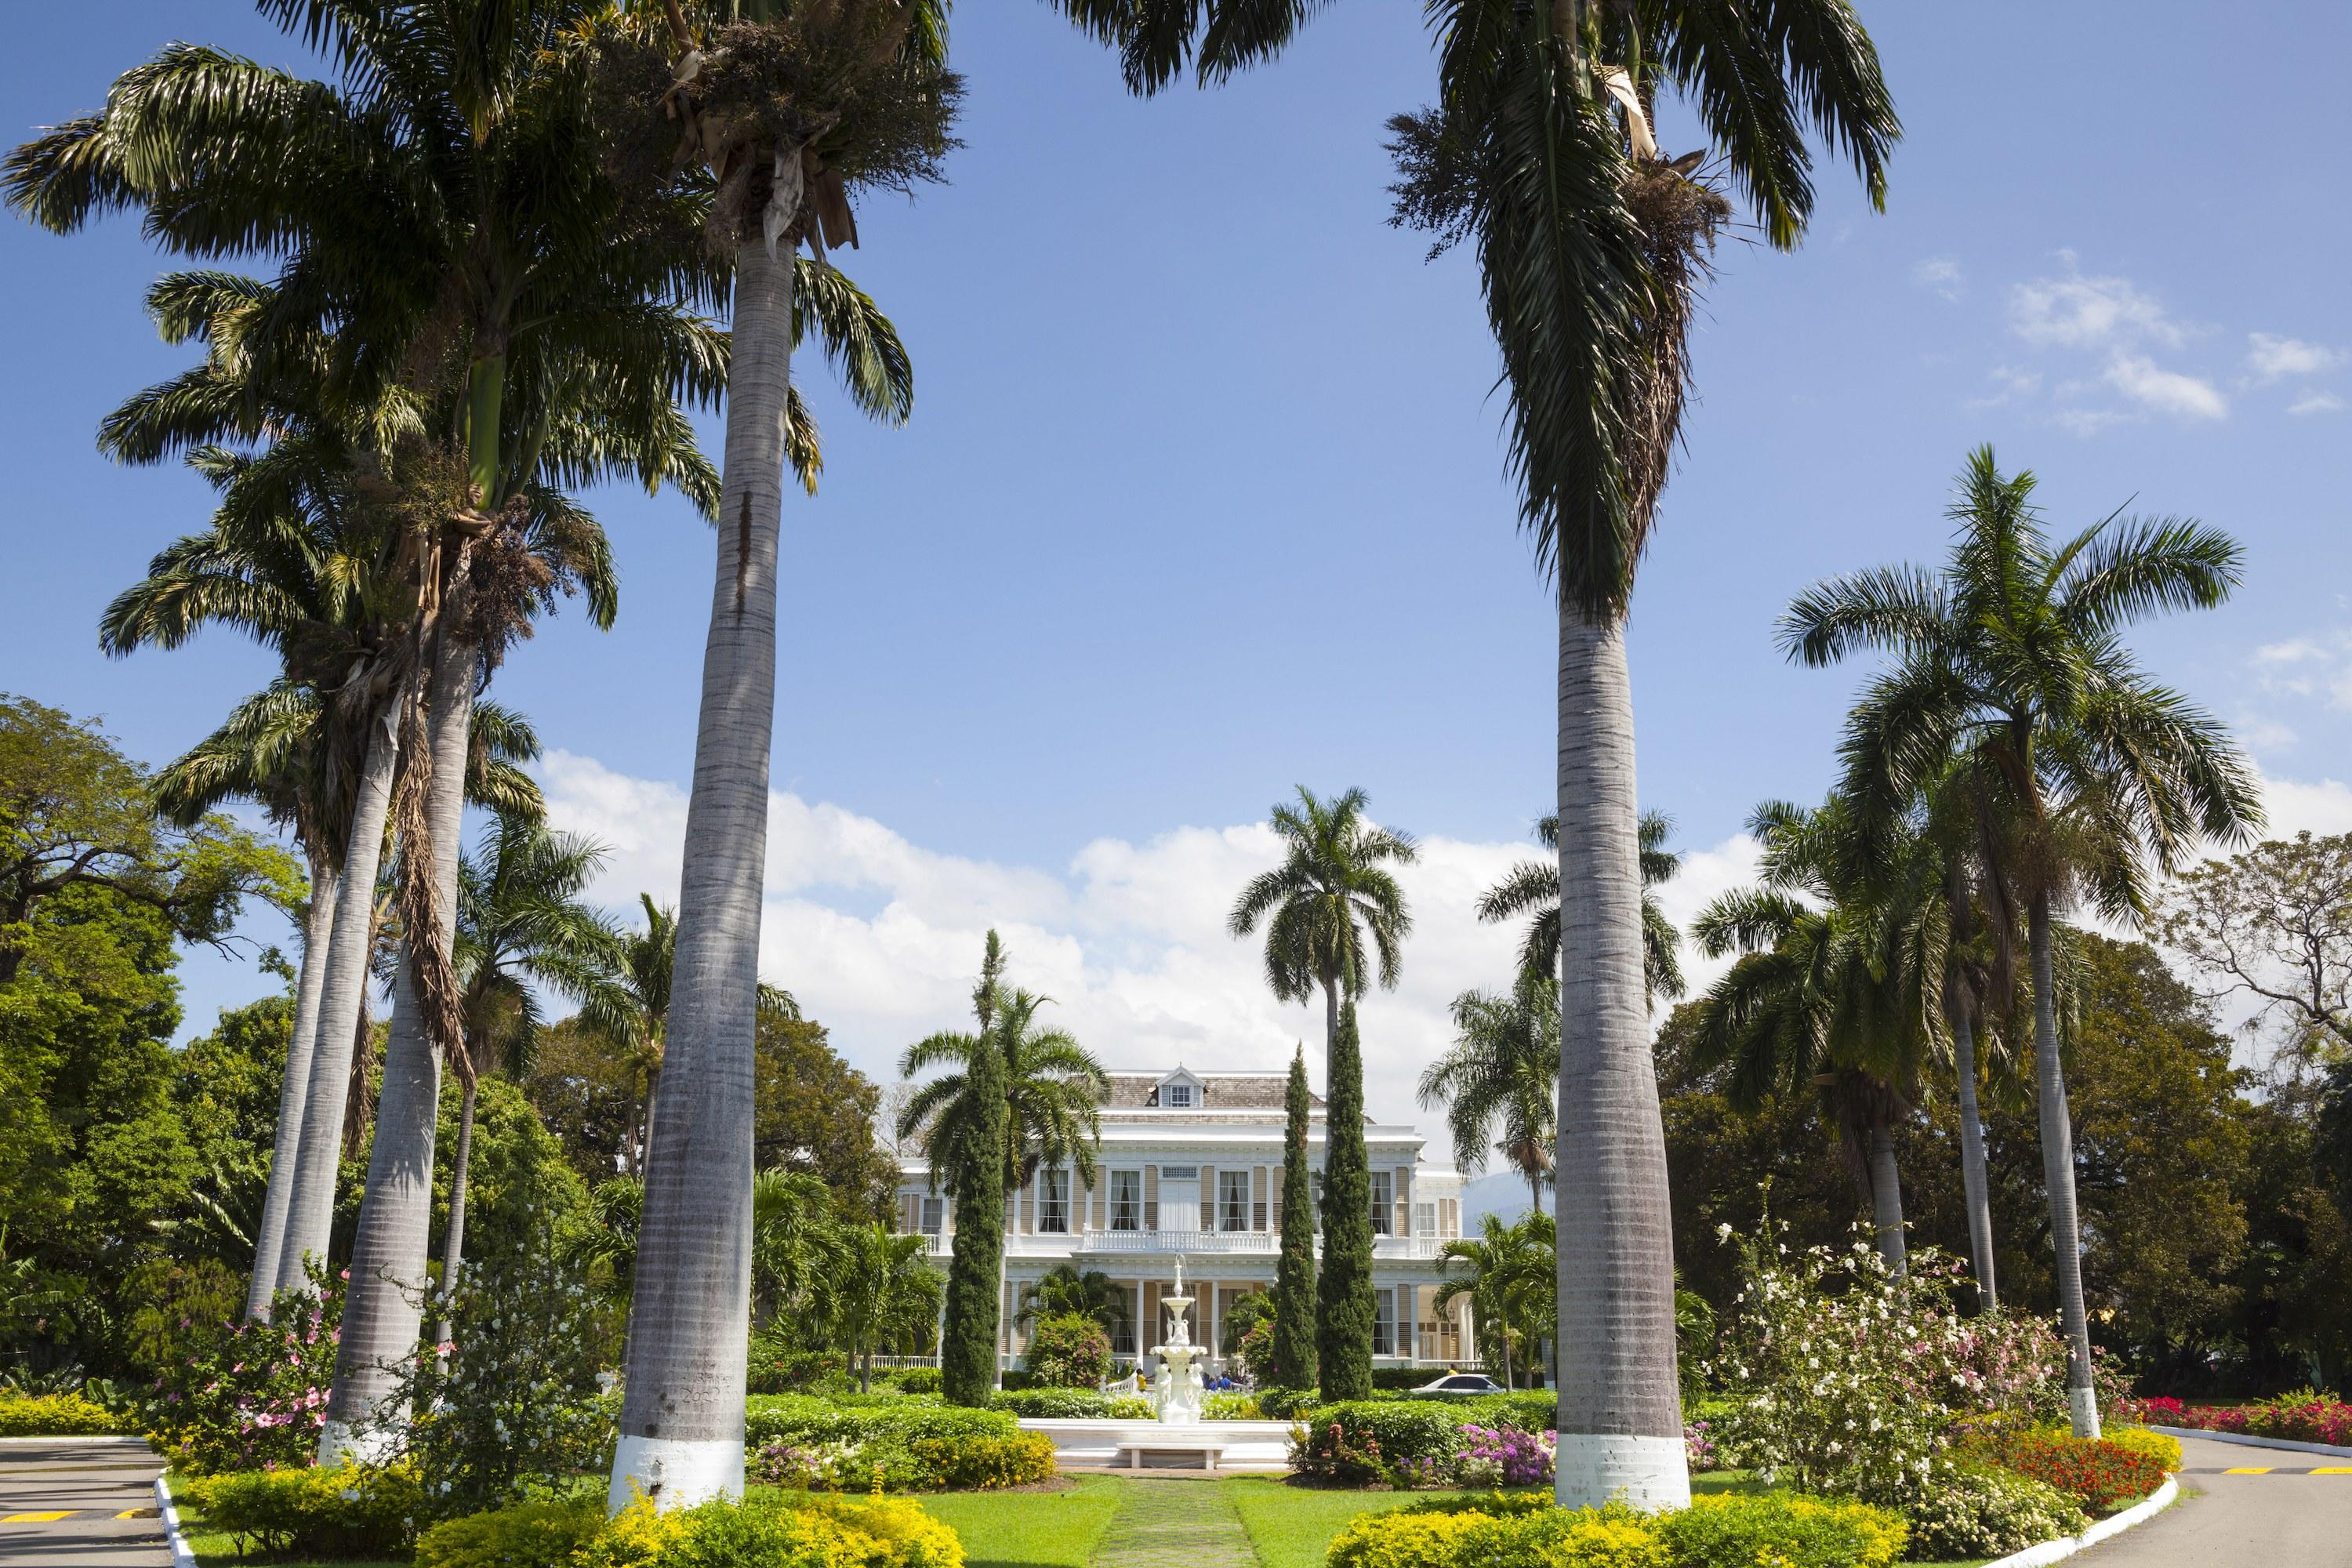 Jamaica's capital city is home to Devon House, an example of Jamaican Georgian architecture that was once the personal residence of the country's first black millionaire, George Stiebel. The restored home, built in 1881, now operates as a museum as well as a National Heritage Site.